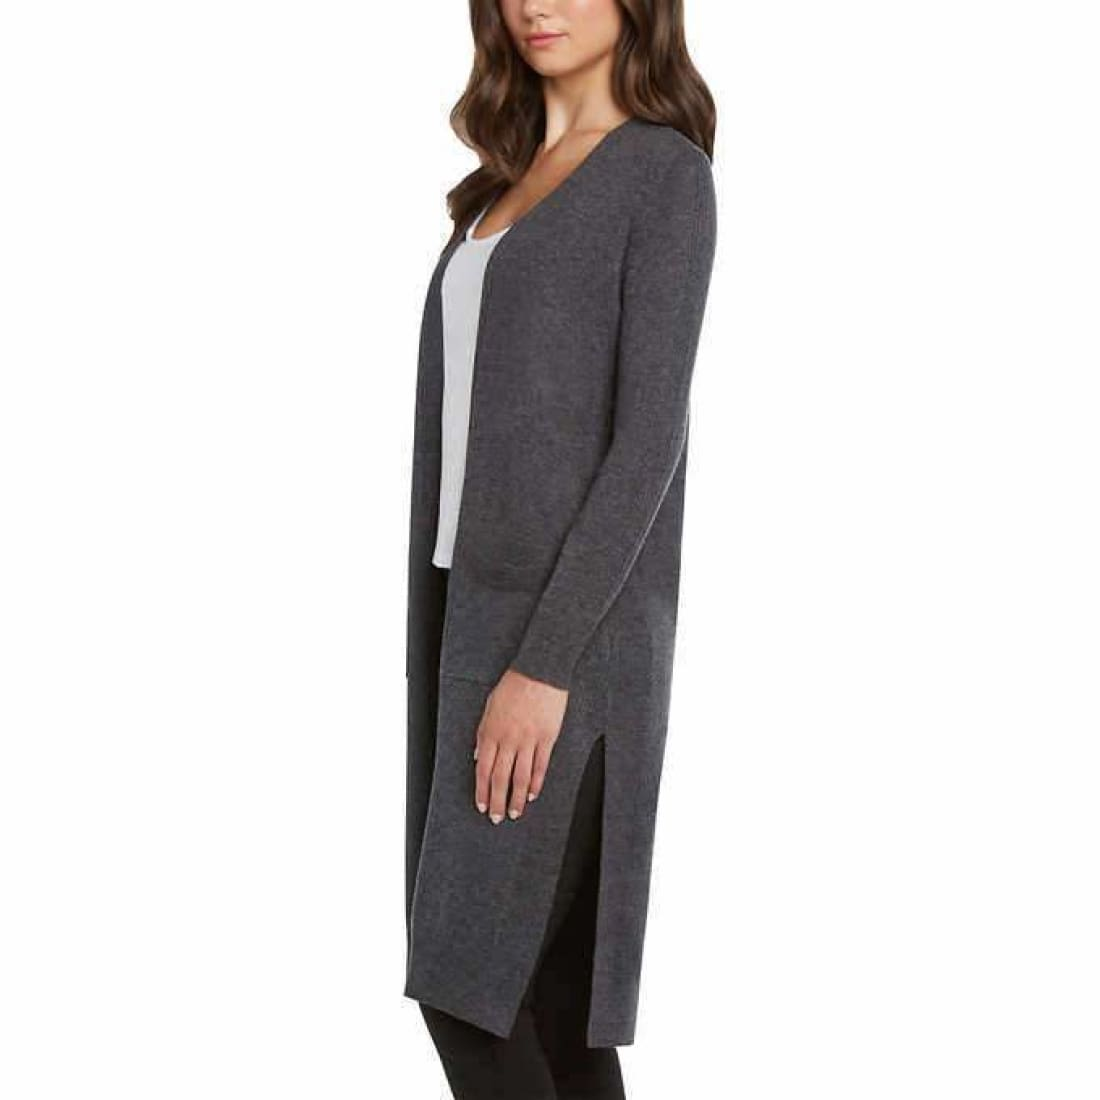 Matty M Ladies Open Front Cardigan Duster (Open Package) L / Gray Cardigan Duster